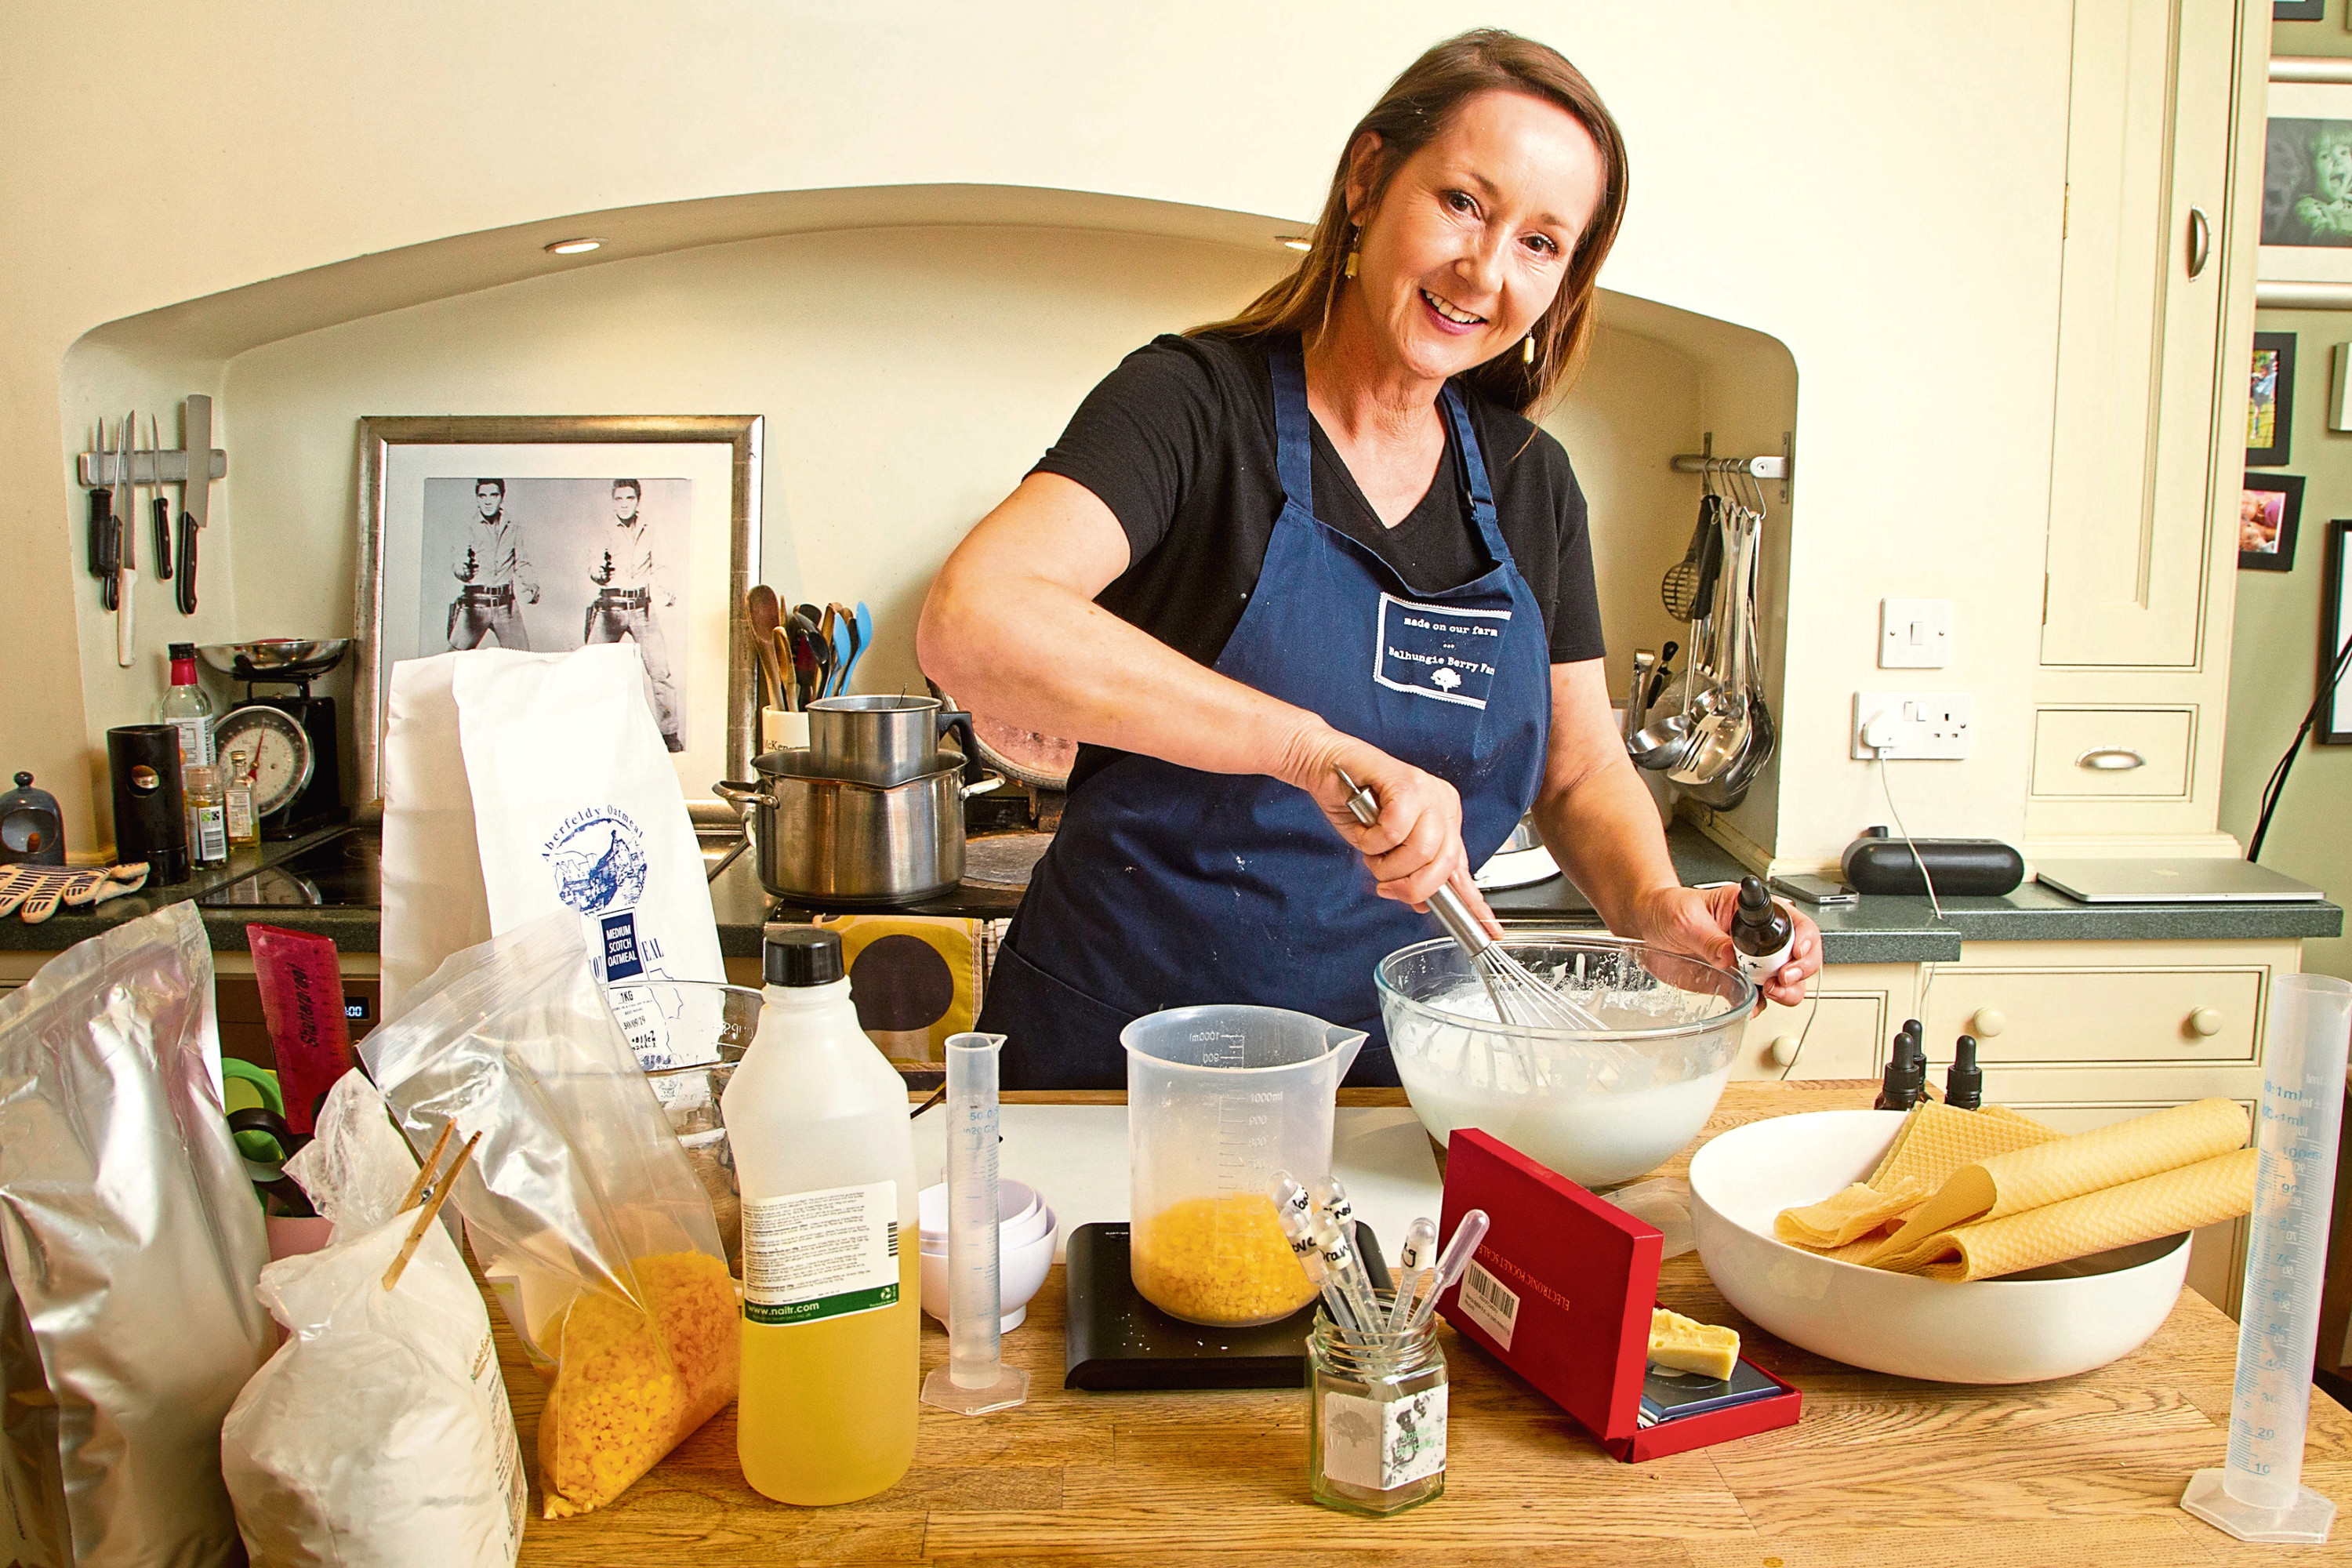 Michelle Porter making products in her kitchen.